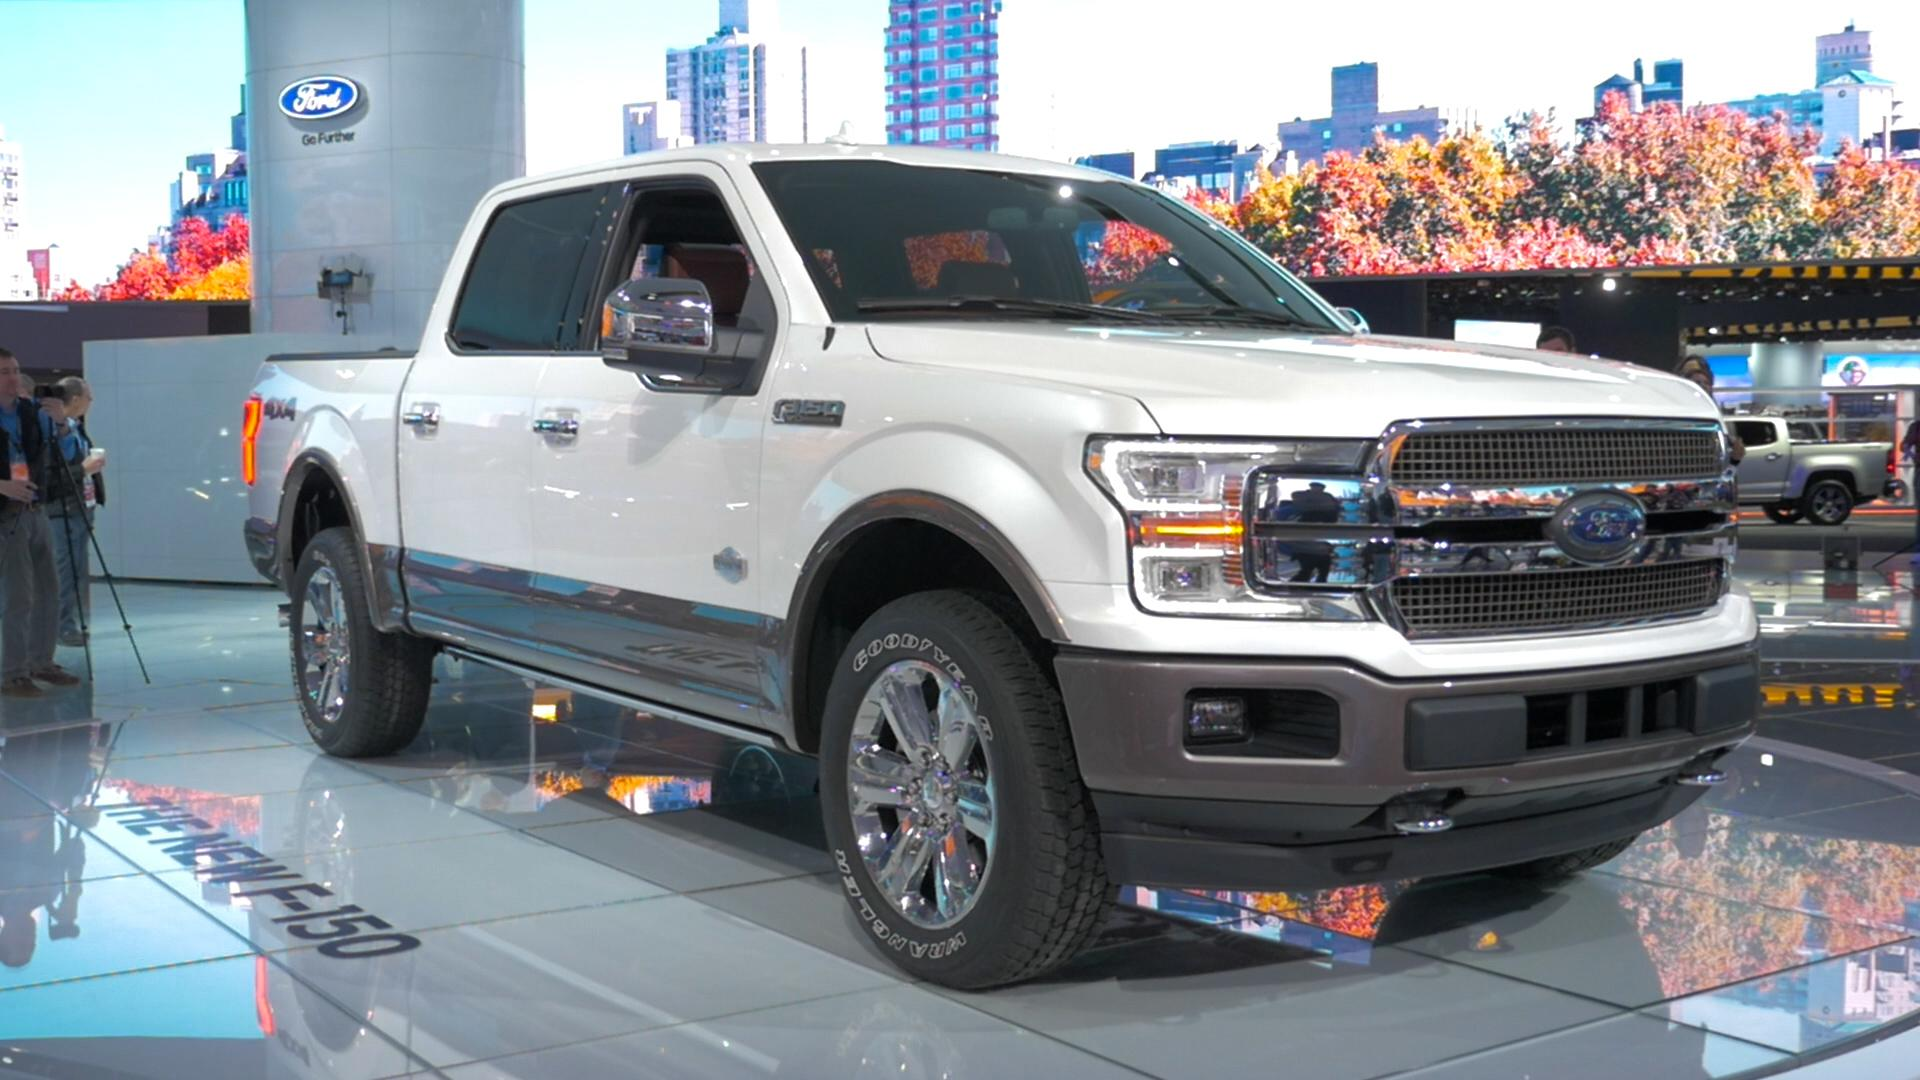 Ford To Recall 13M F 150 And Super Duty Trucks Doors Could Fly